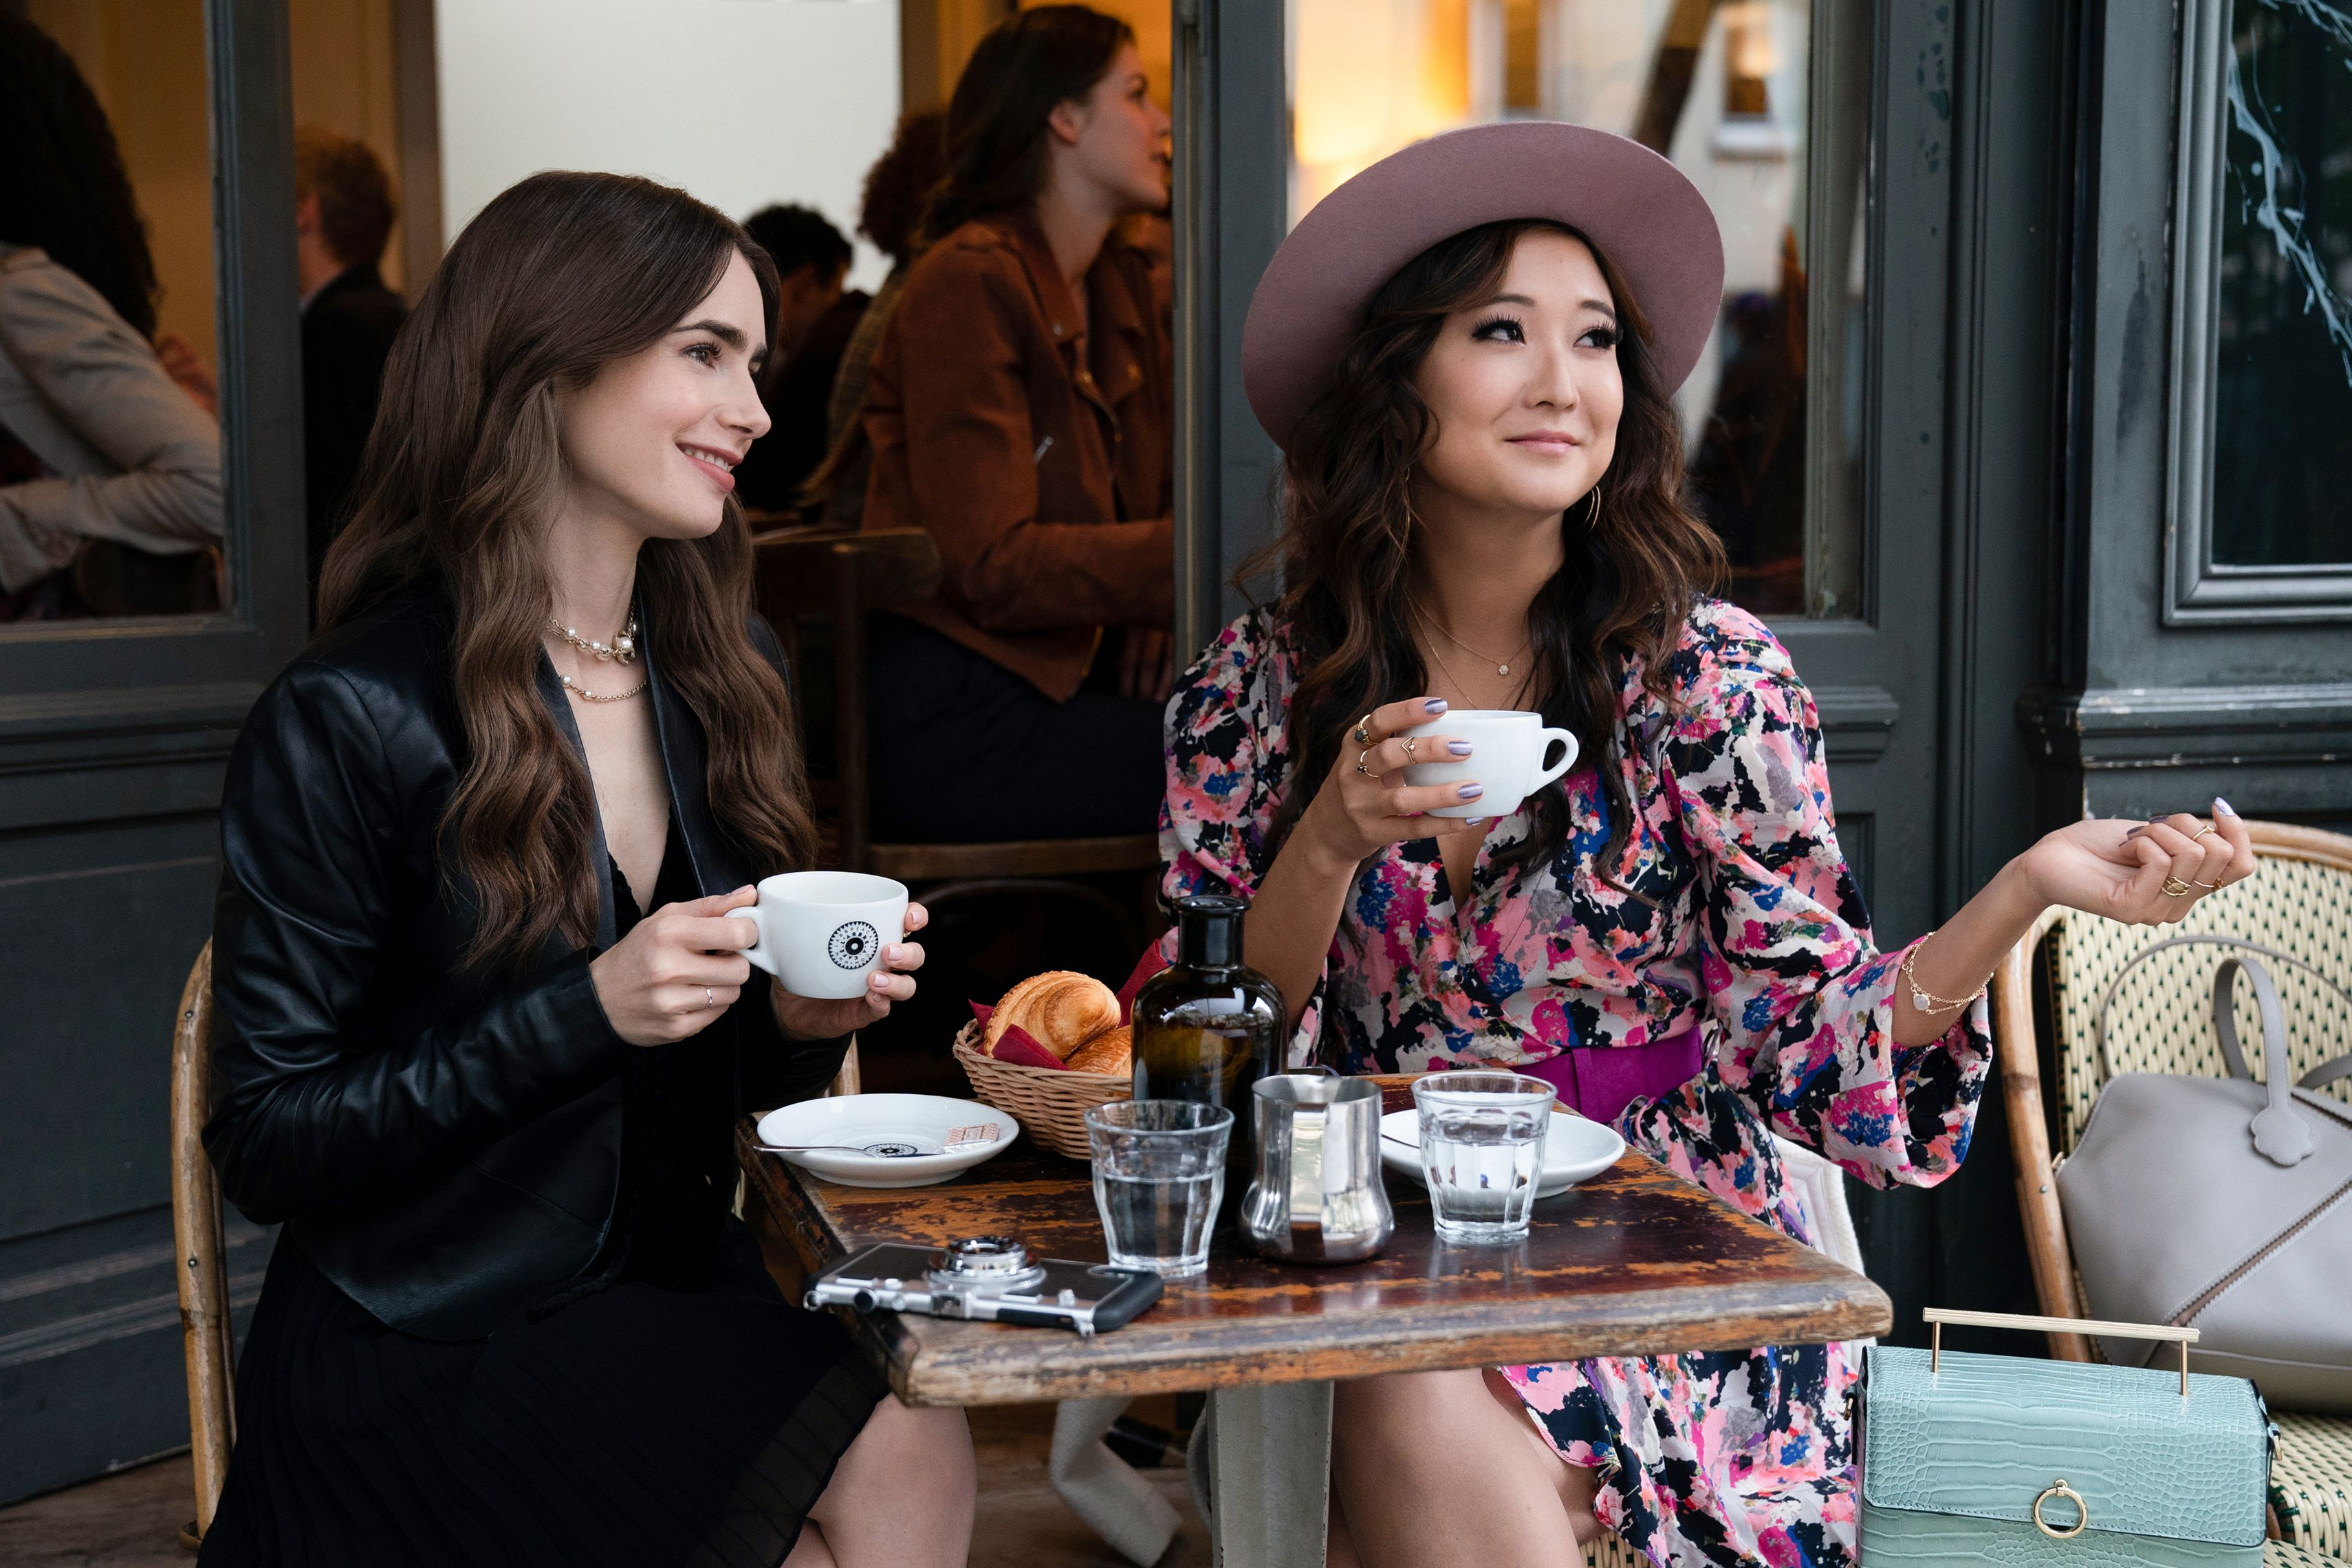 Emily In Paris' Cast - Meet the Characters of Netflix's 'Emily In Paris'